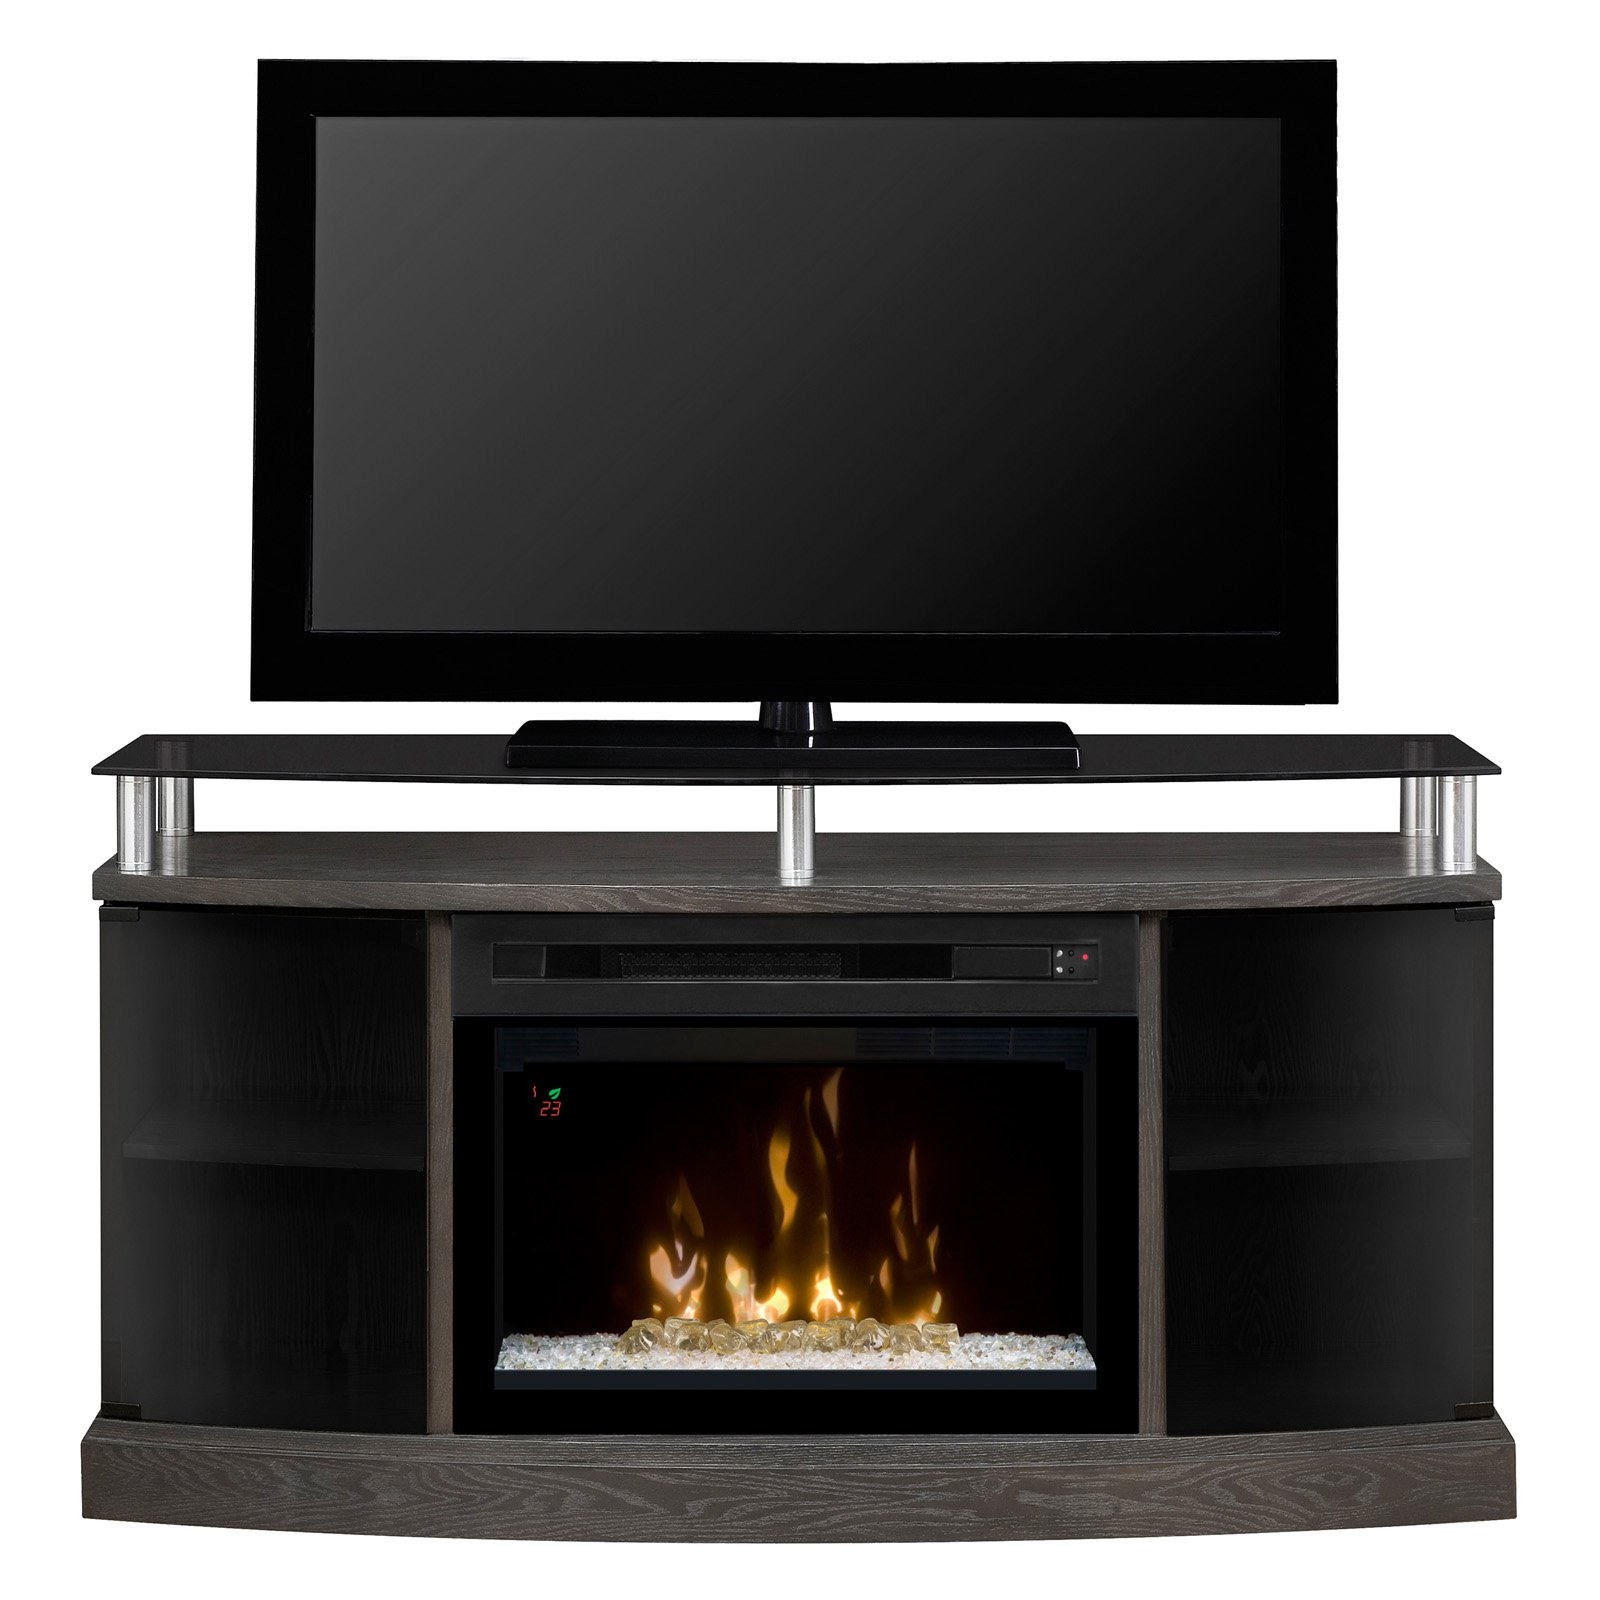 Dimplex Windham Media Console with Electric Fireplace